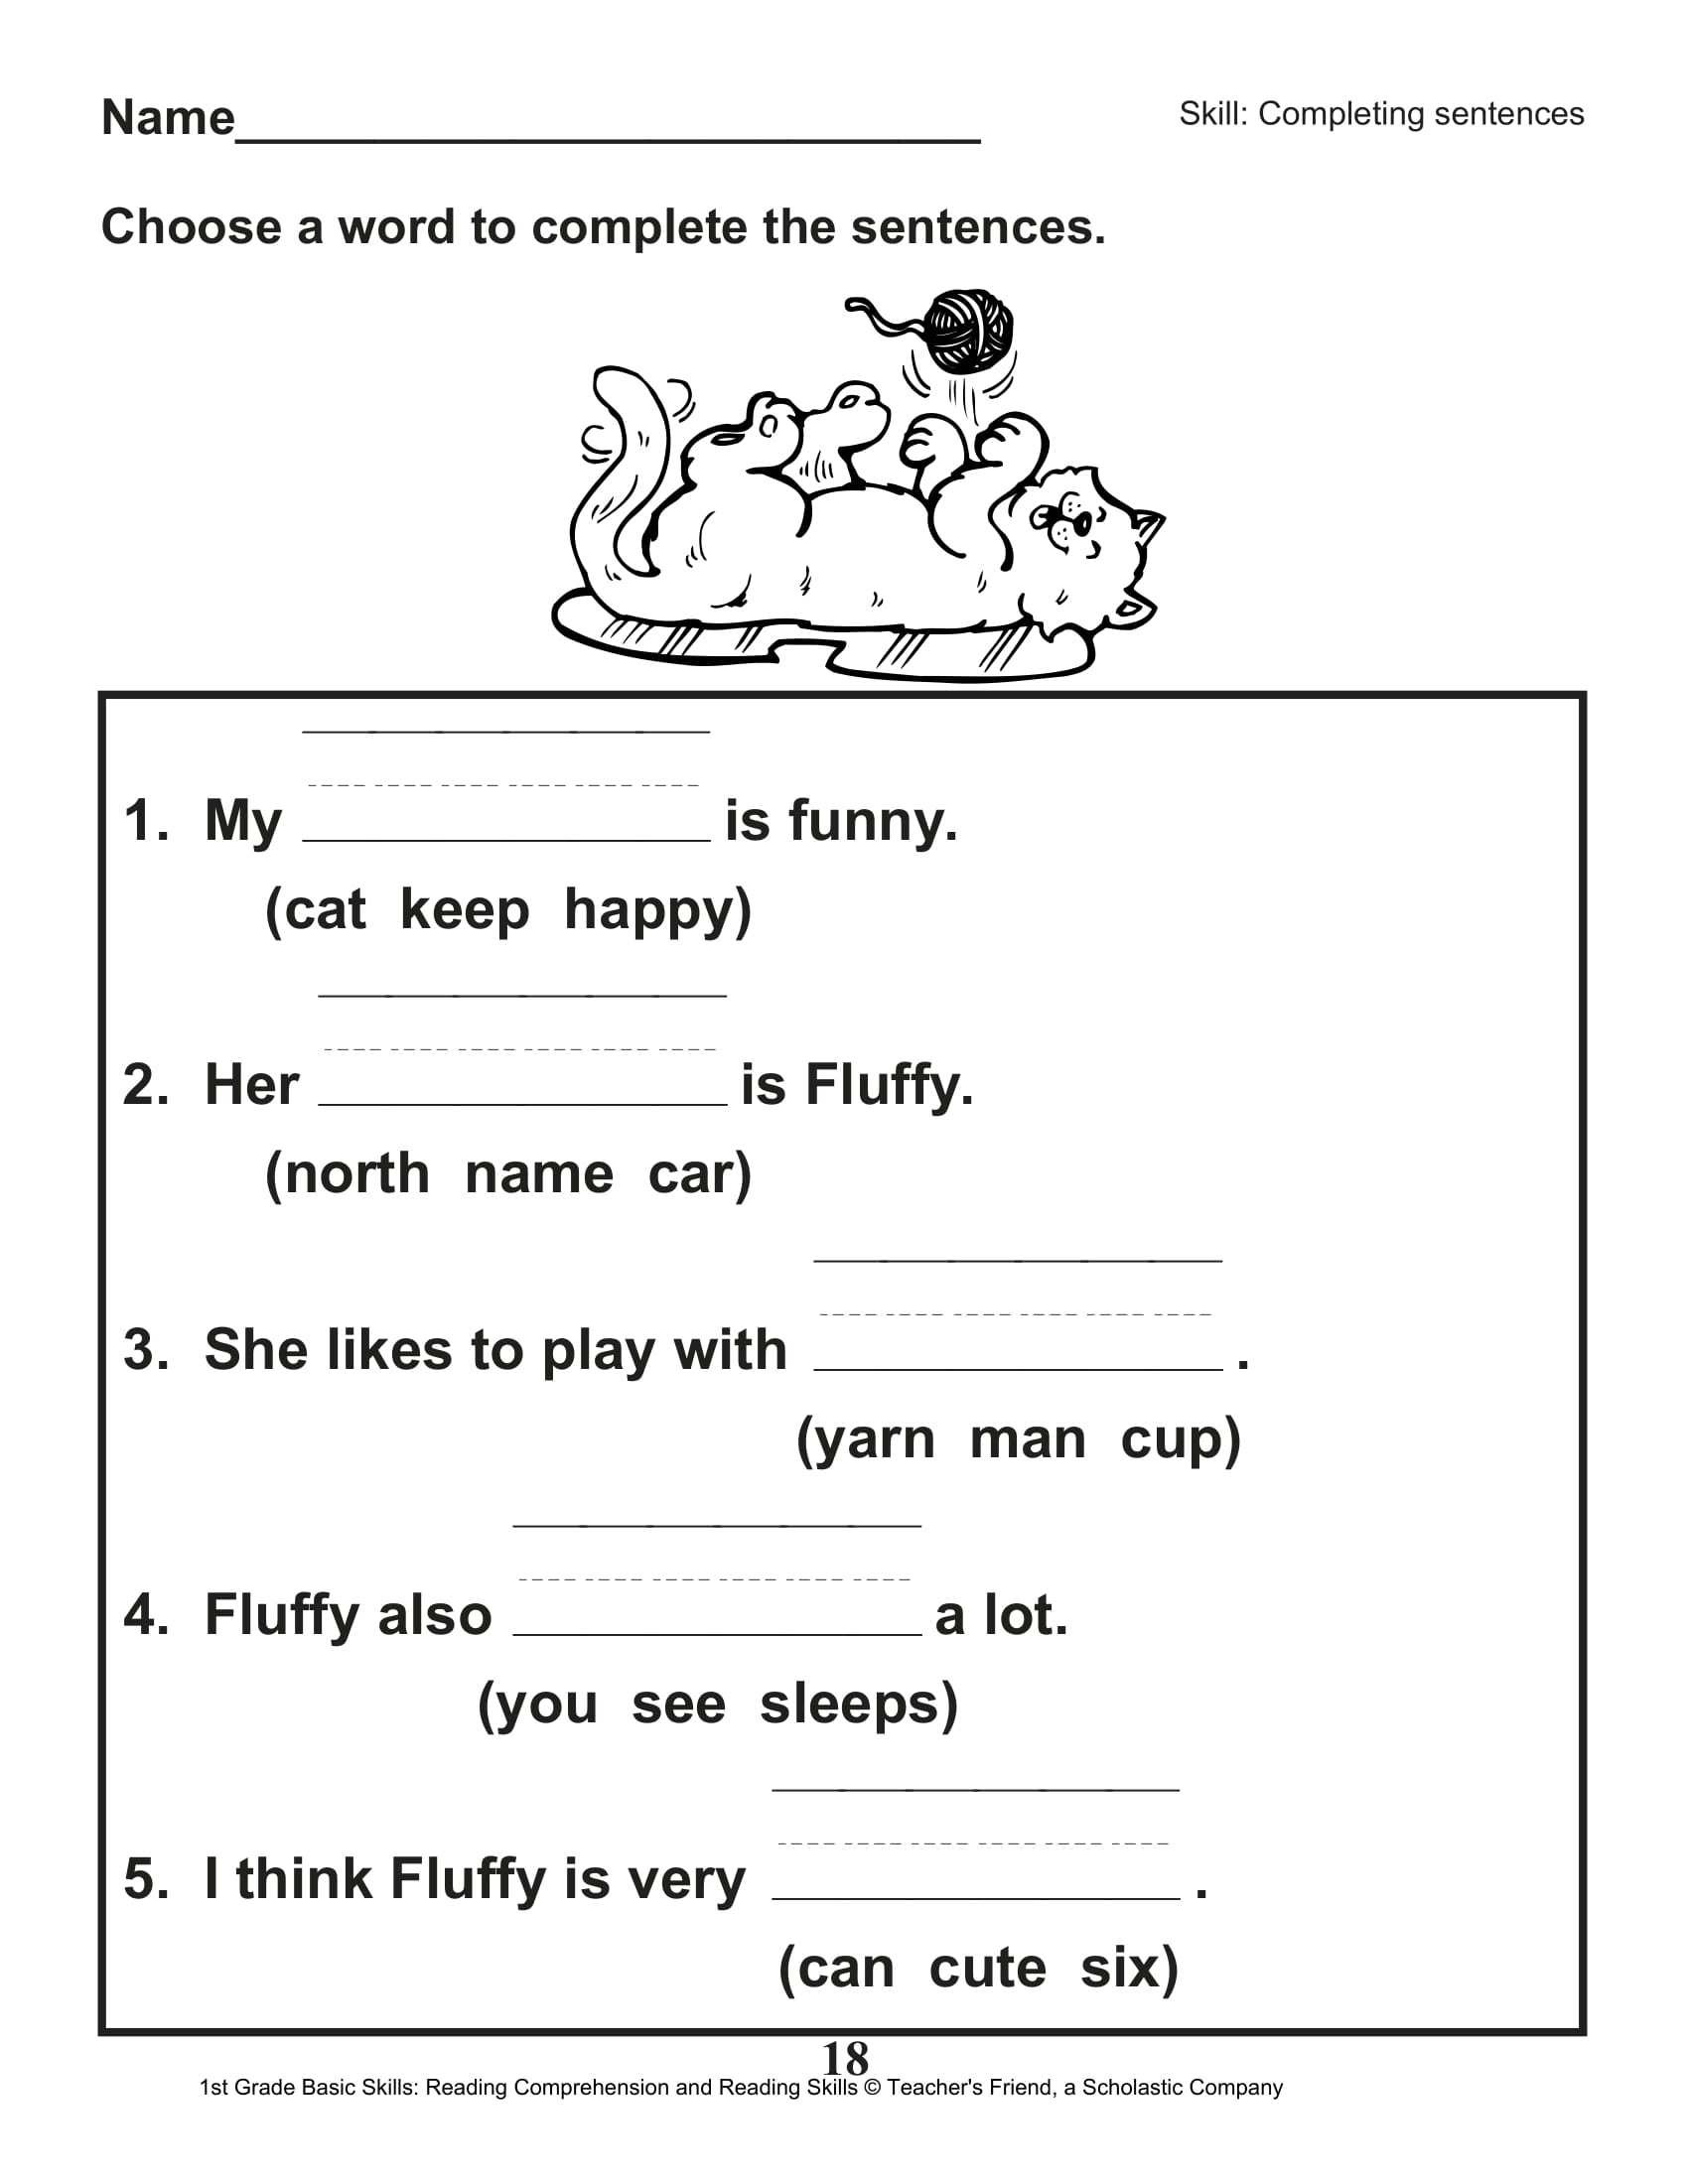 6th Grade Reading Worksheets Printable Math Worksheet 64 1st Grade Reading Skills Image Ideas 2nd